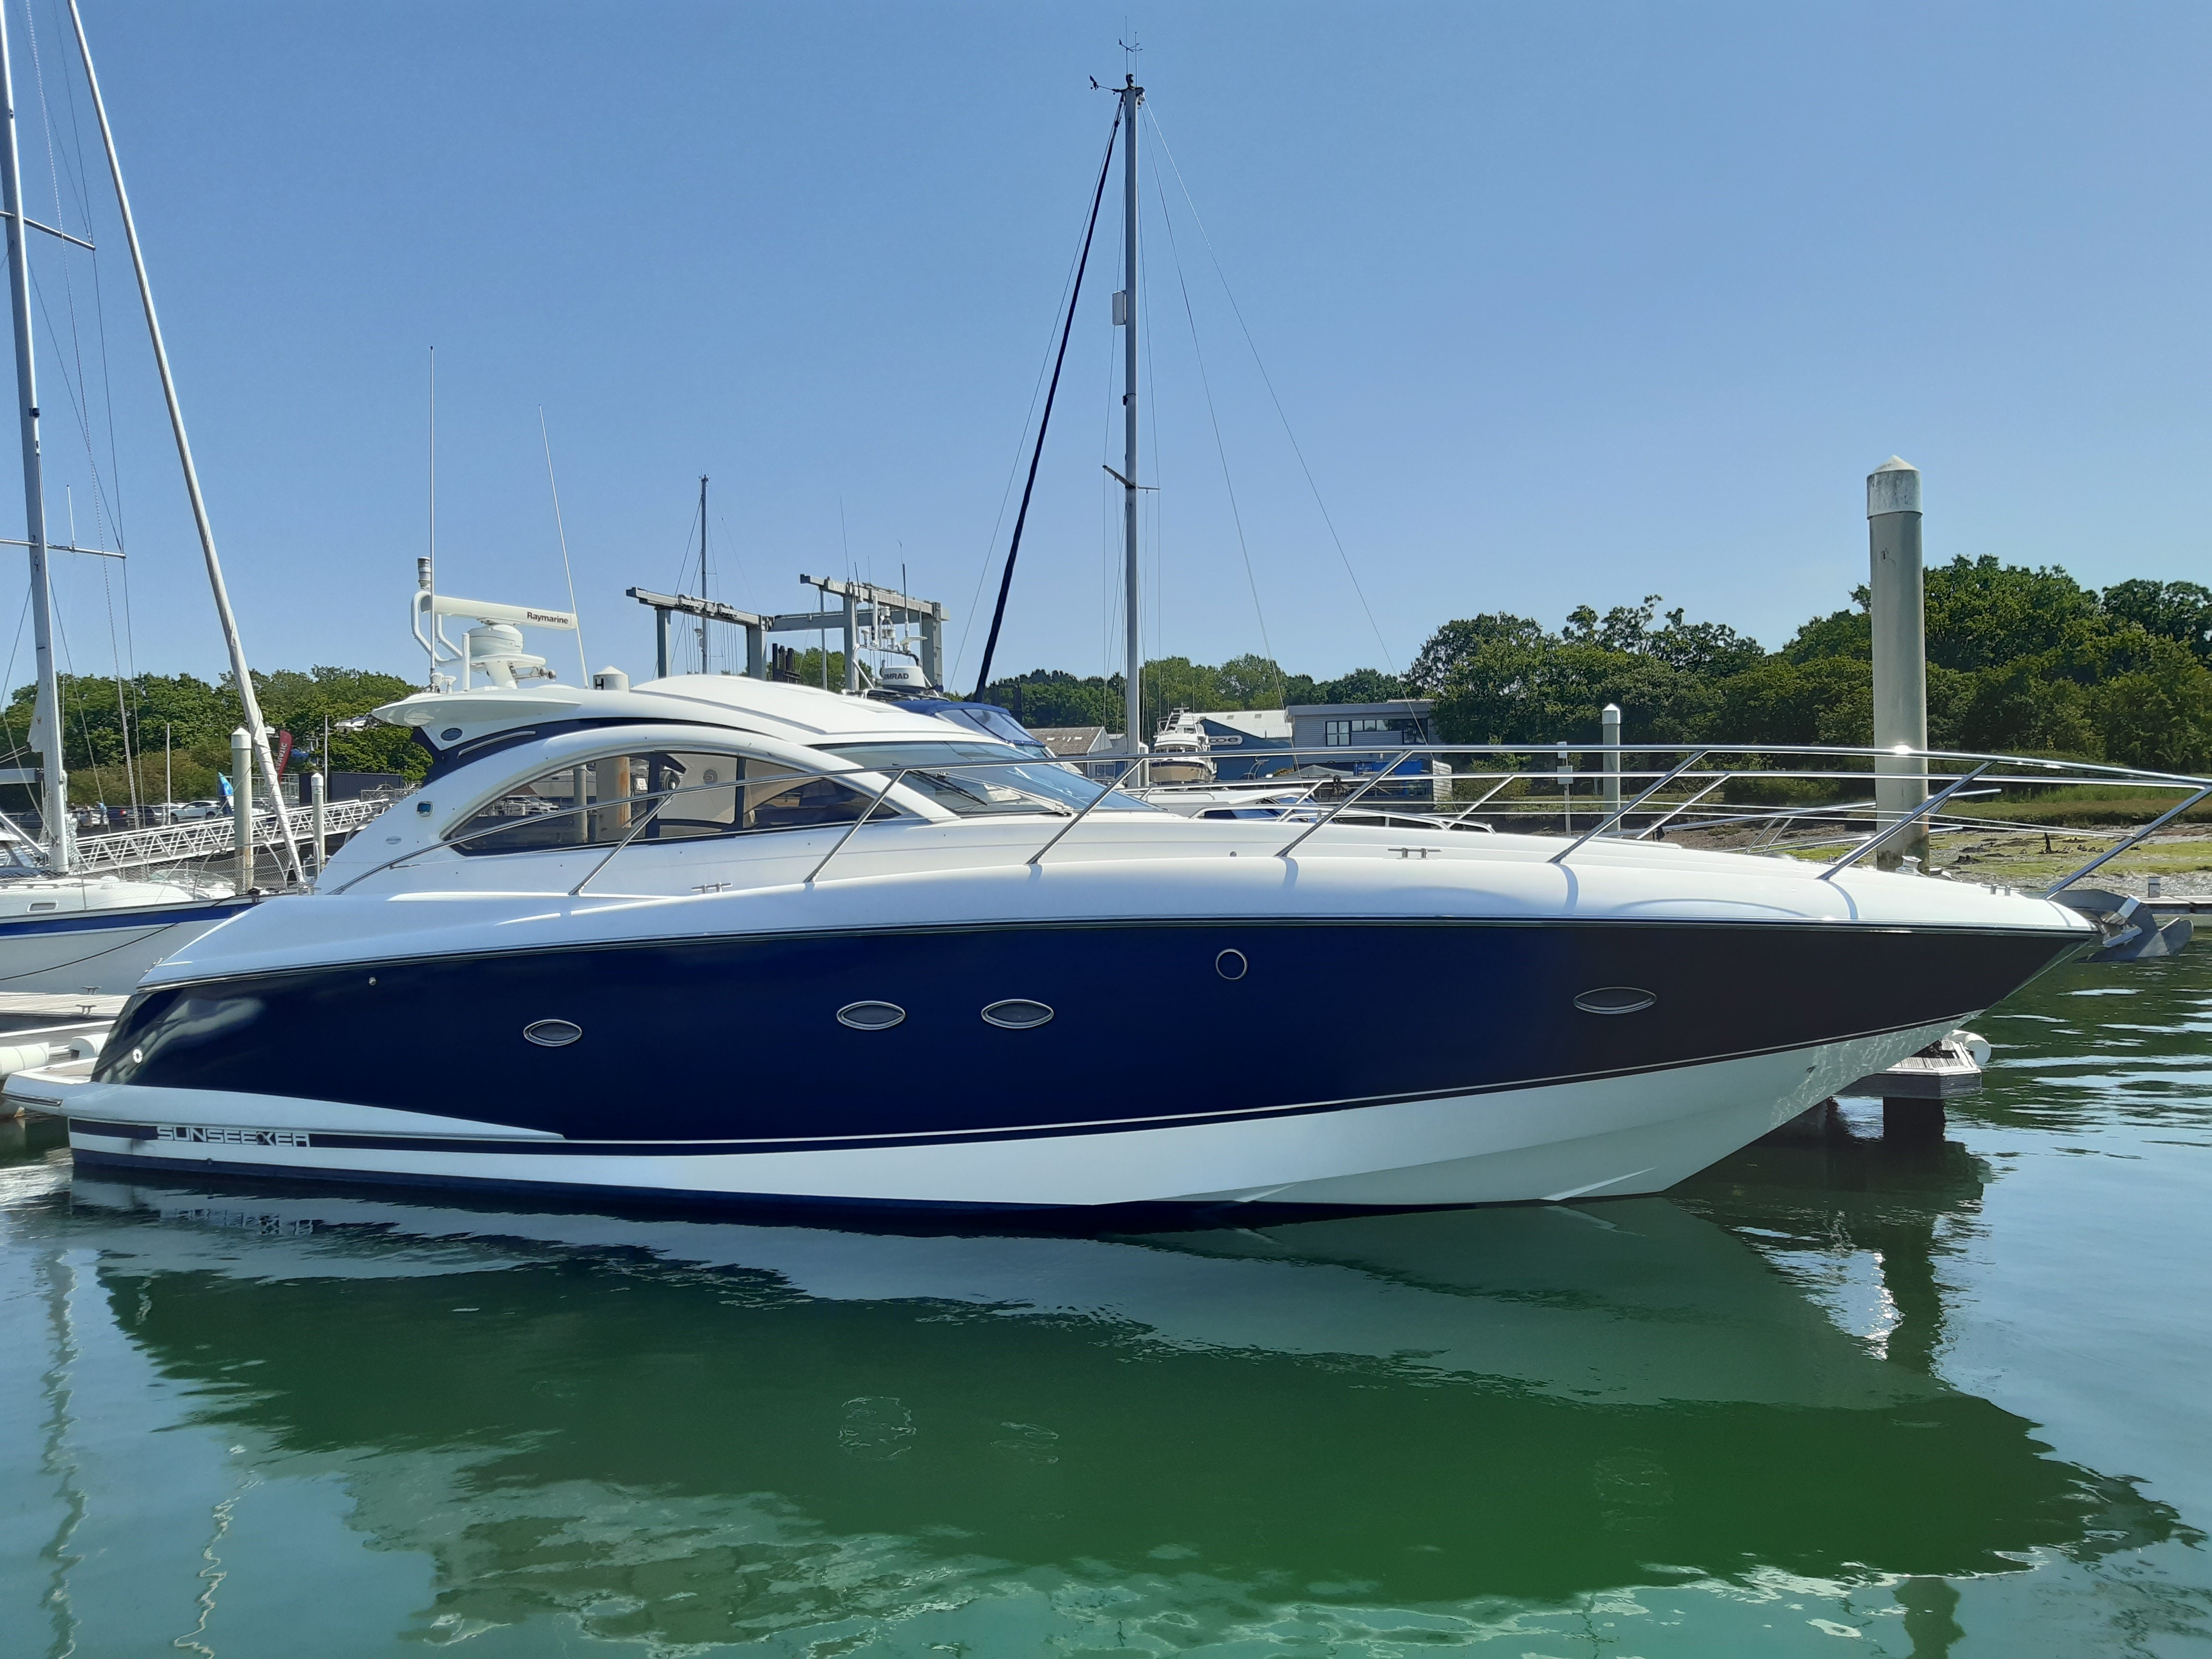 Sunseeker Portofino 47 For sale - Sunseeker Portofino 47